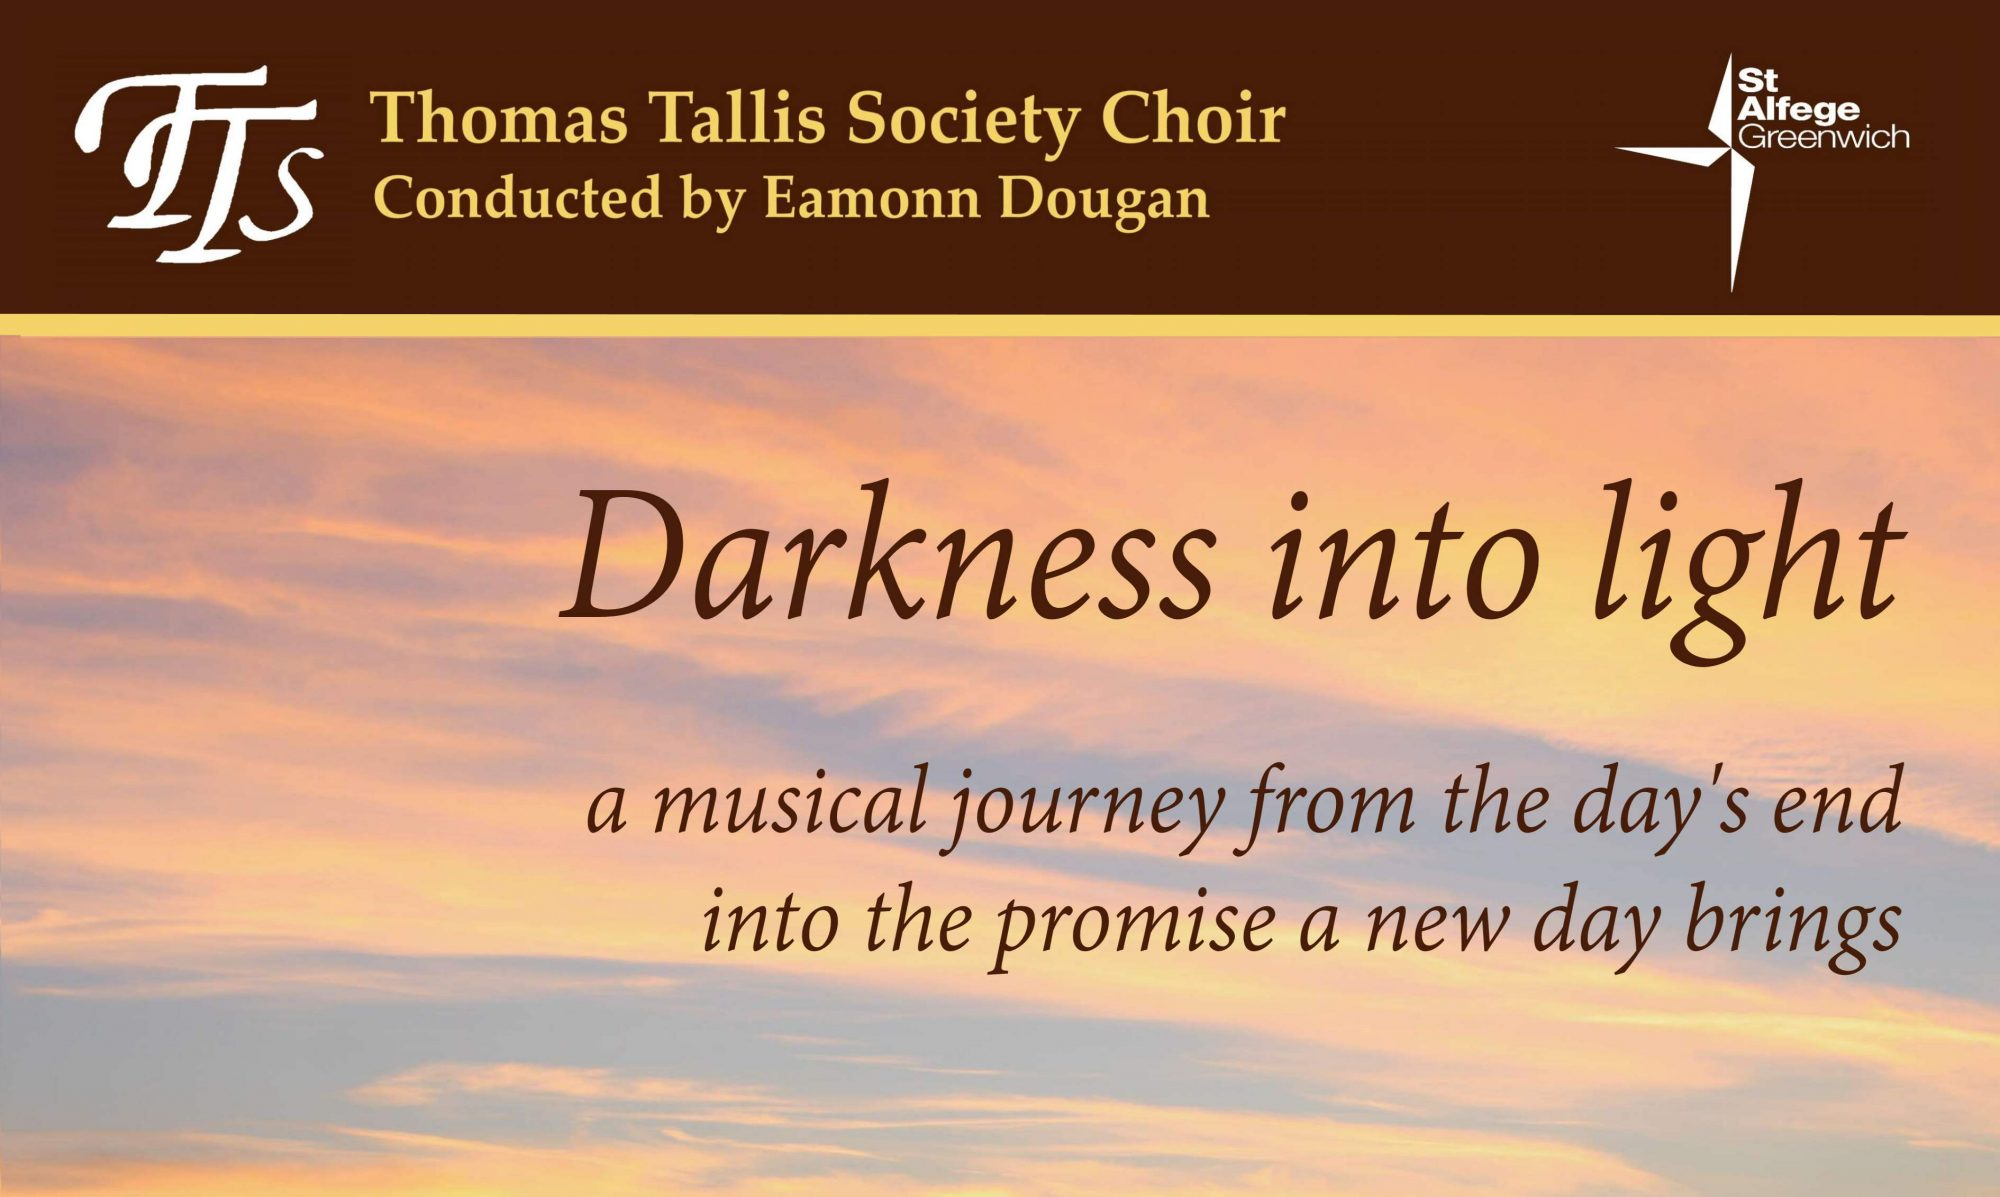 Thomas Tallis Society